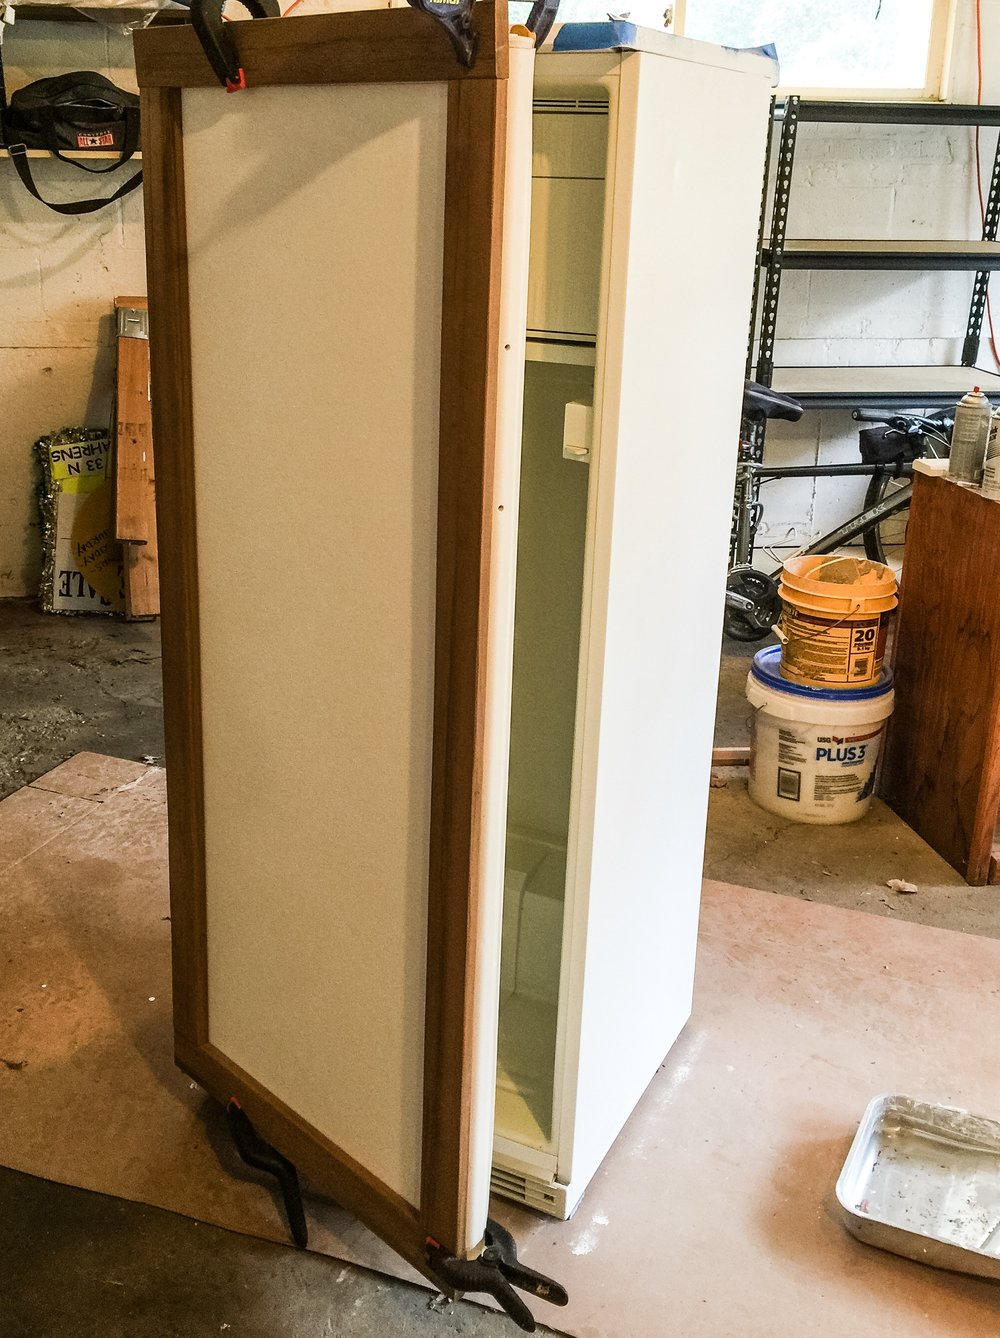 Framing a refrigerator to make a chalk board fridge.